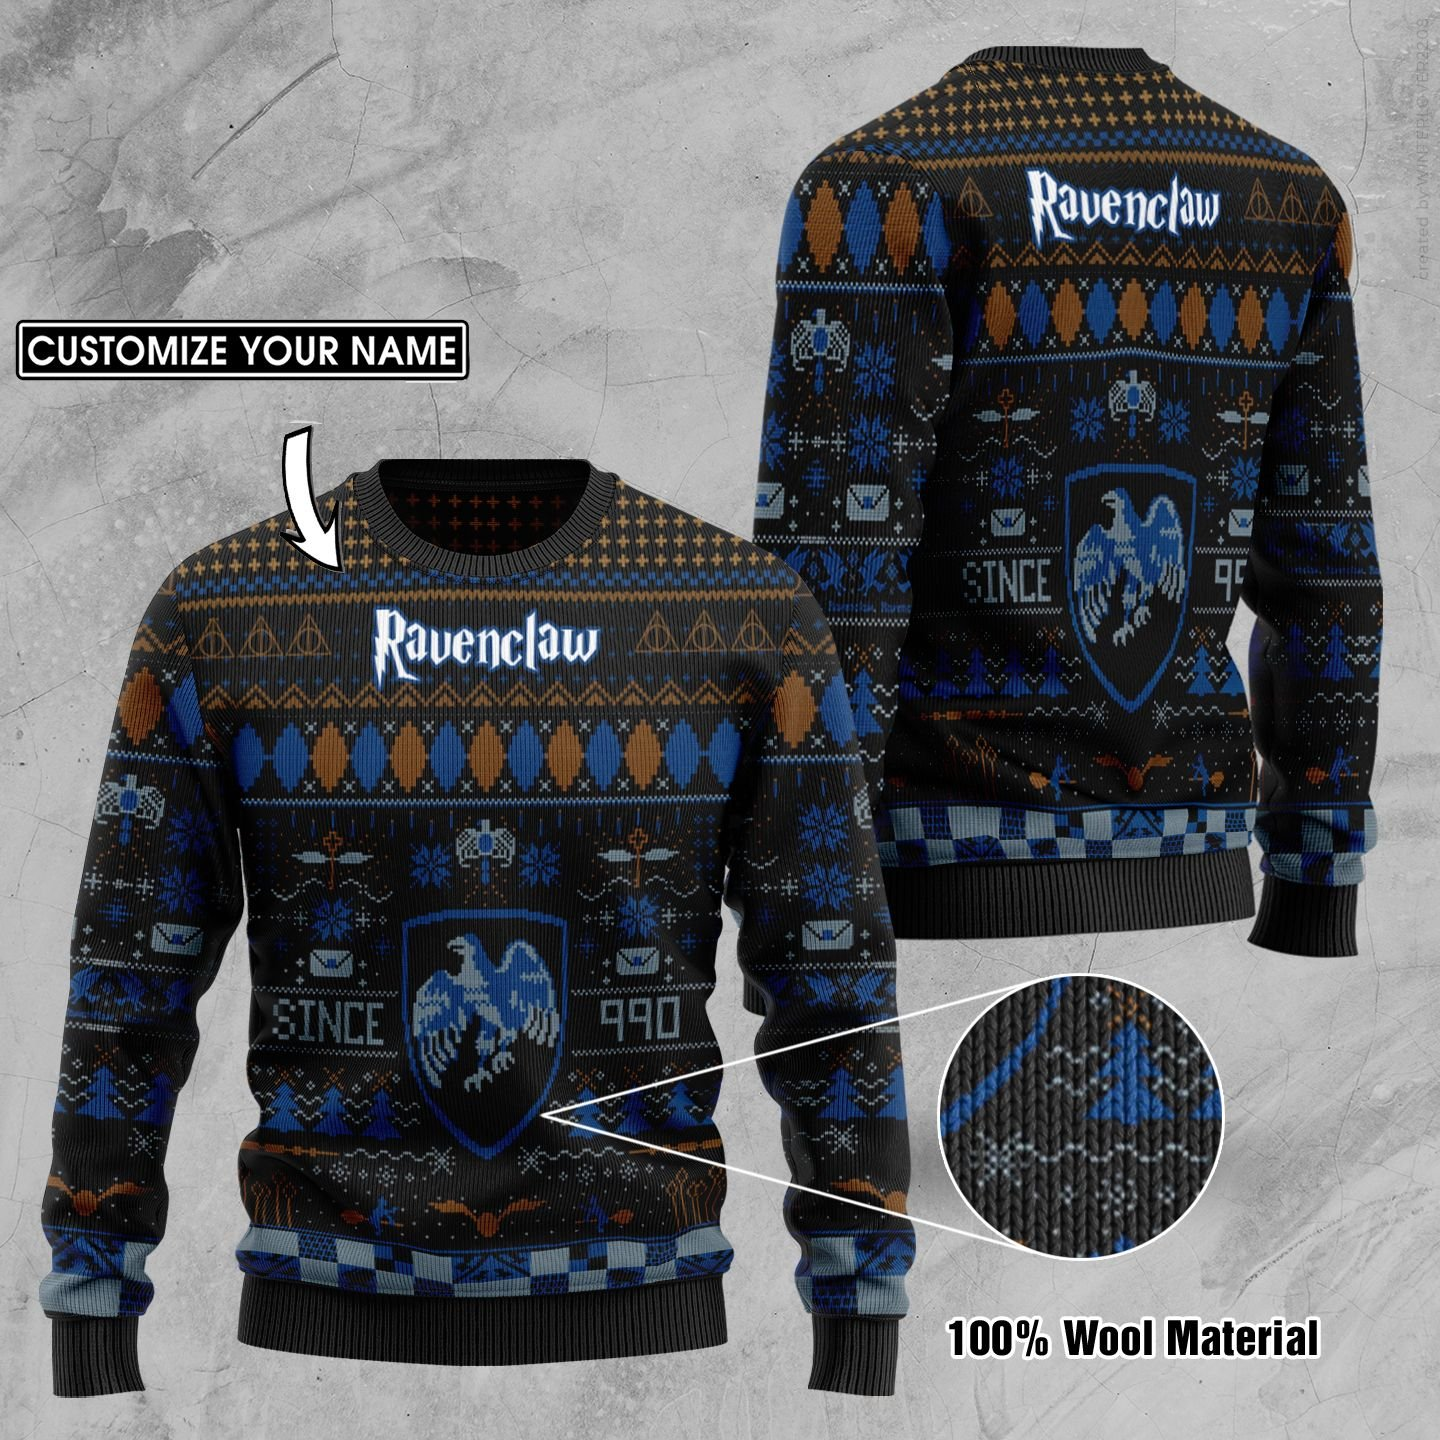 Custom Name Ravenclaw Harry Potter Ugly Sweater